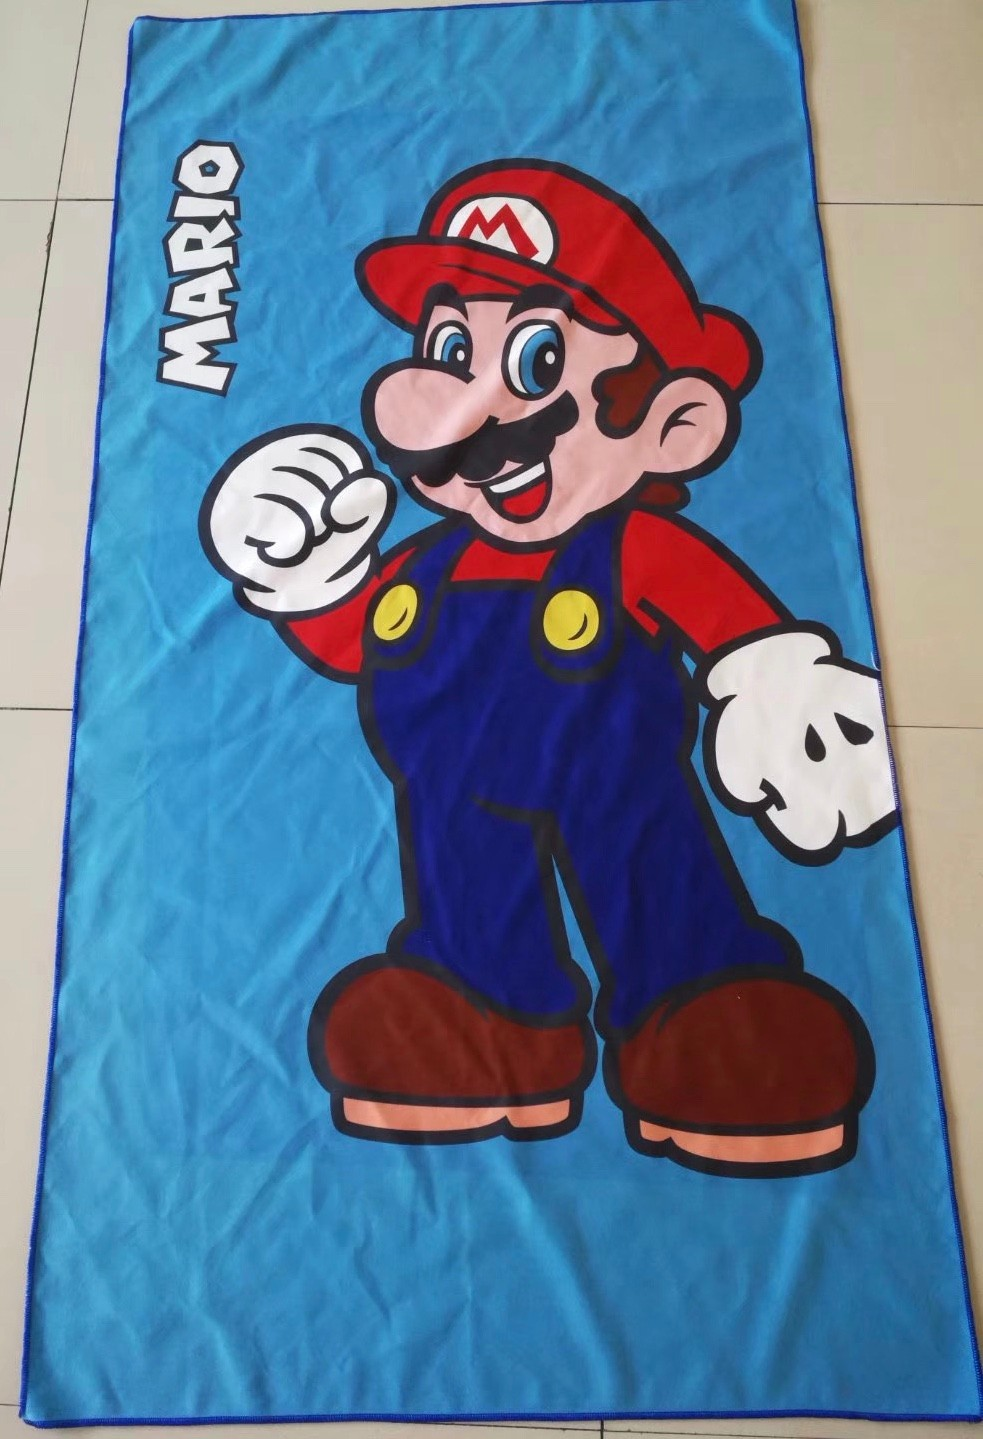 Oversized custom beach towels with names